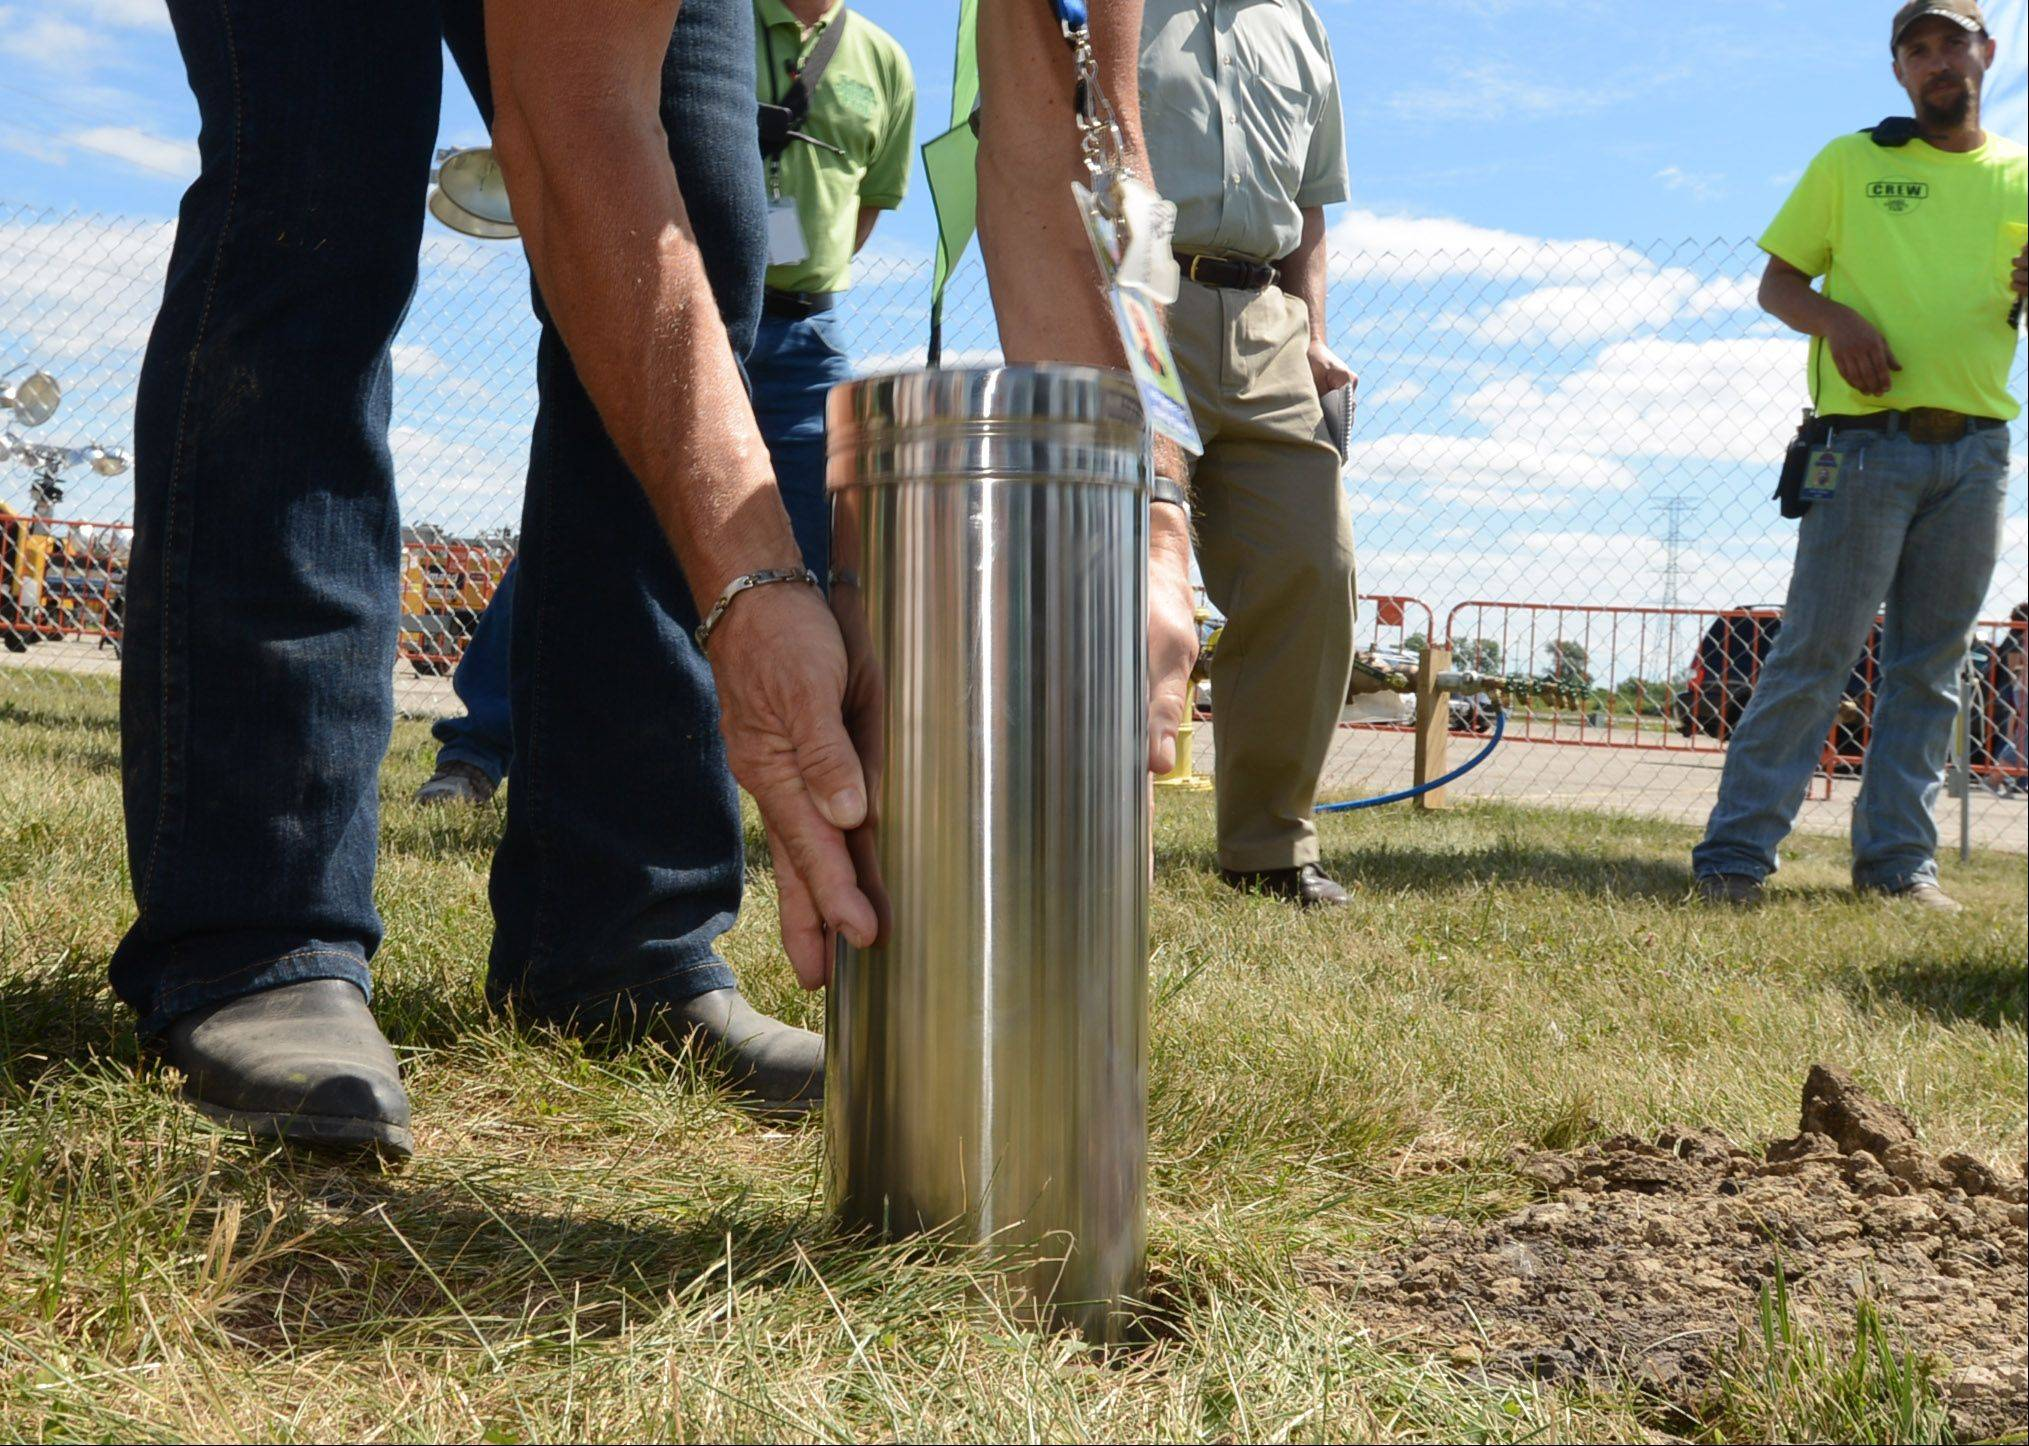 A time capsule is dropped into a hole Wednesday at the Lake County Fair in Grayslake.